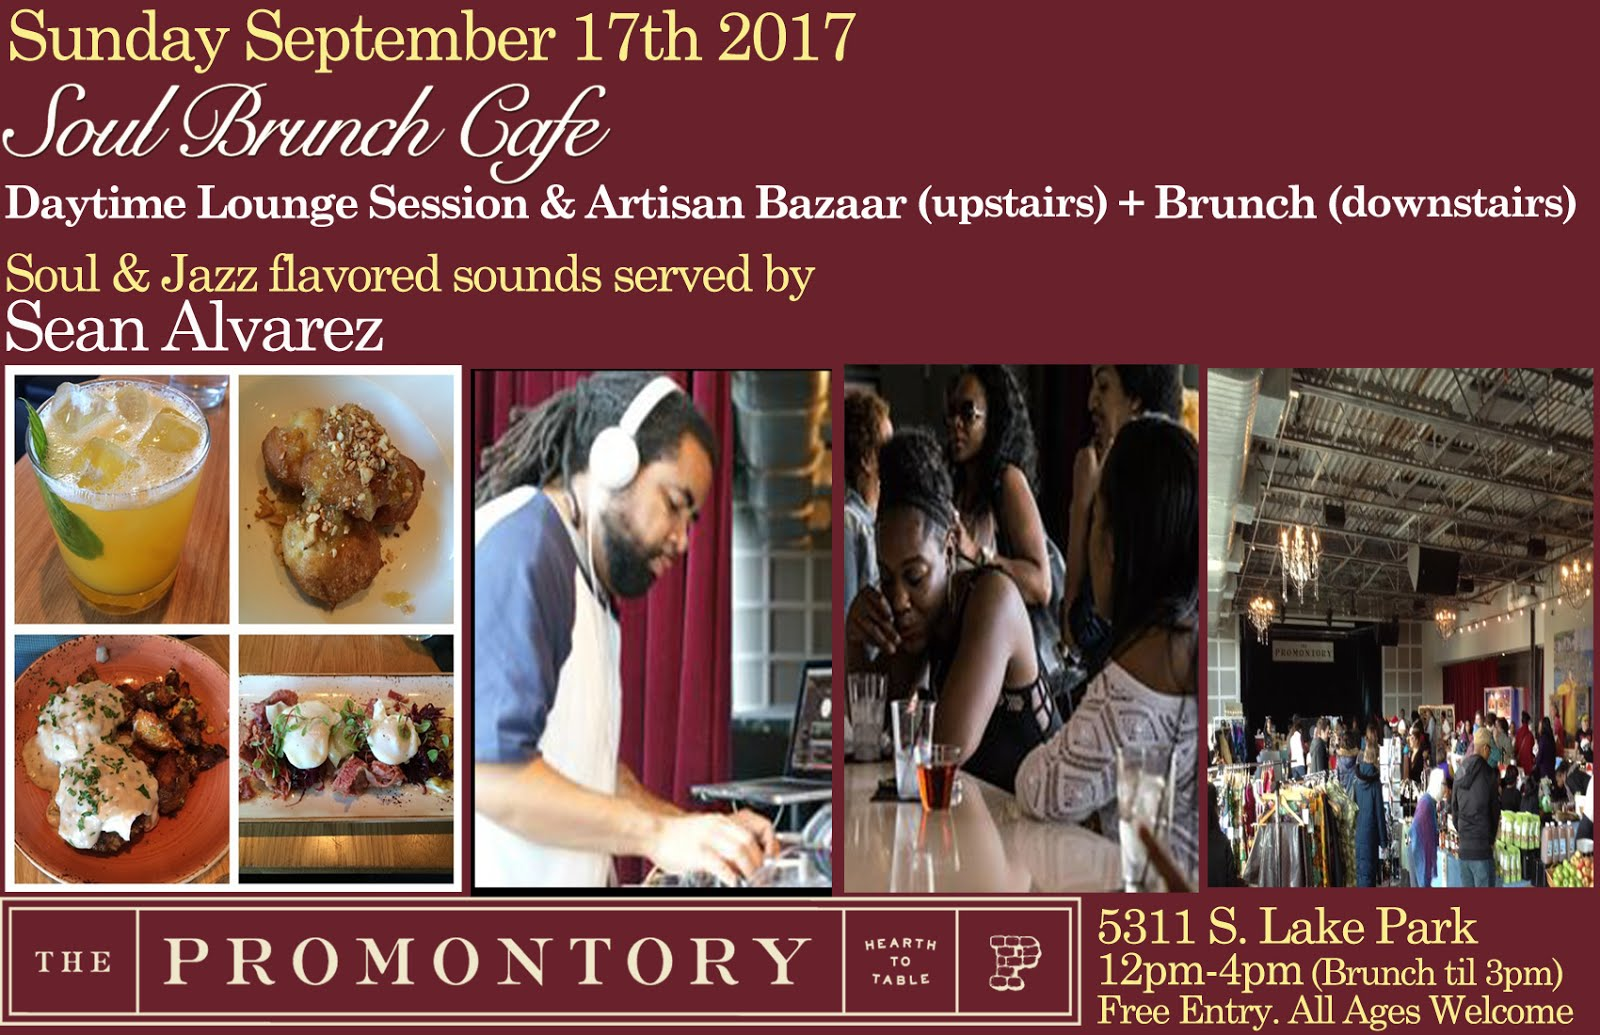 Sunday 9/17: Soul Brunch Cafe @ The Promontory